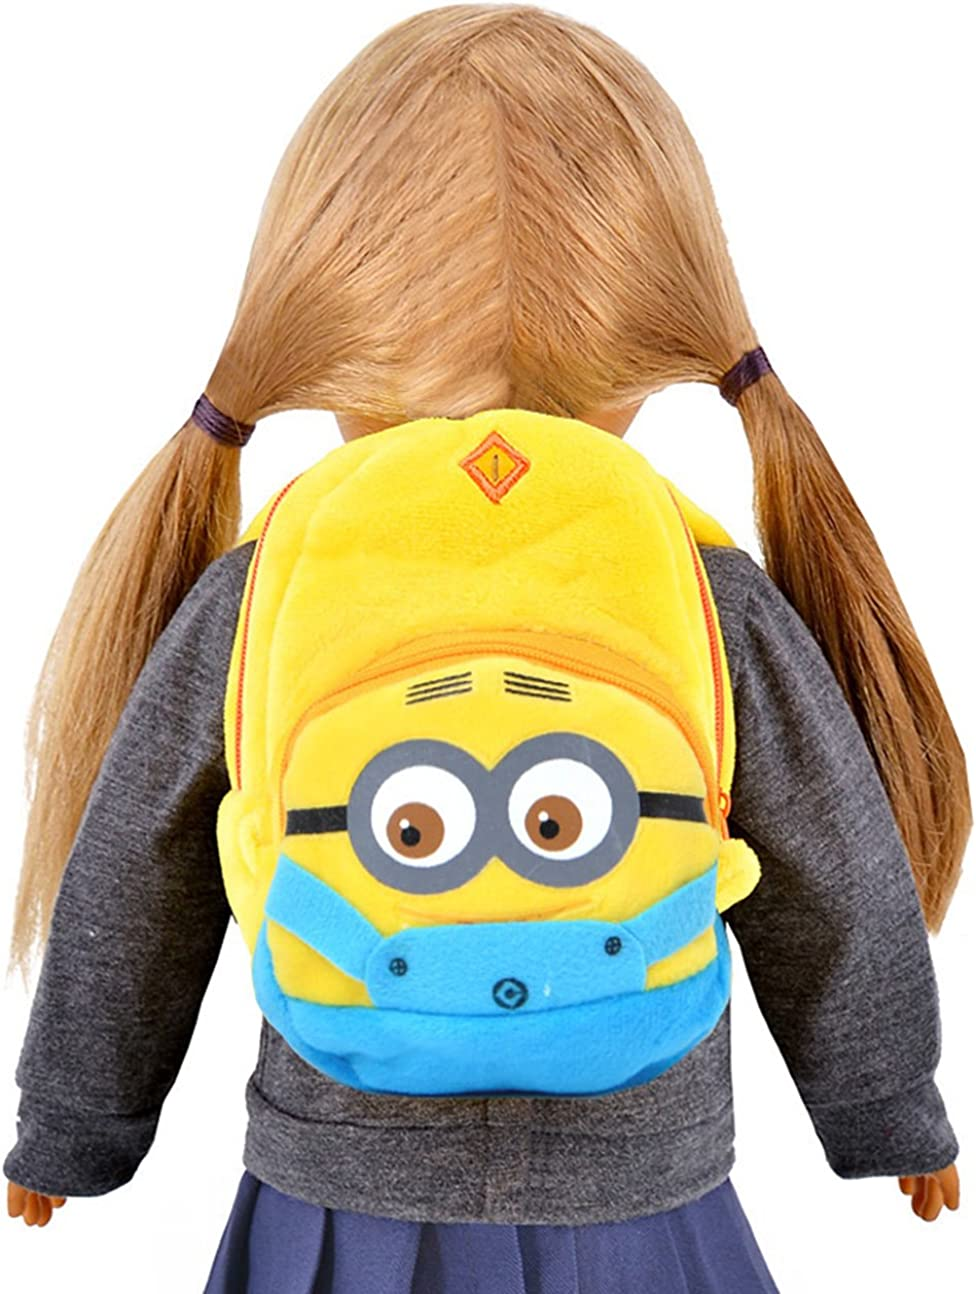 Ebuddy Minions Cartoon Backpack Schoolbag Doll Accessory For 18 inch American Girl